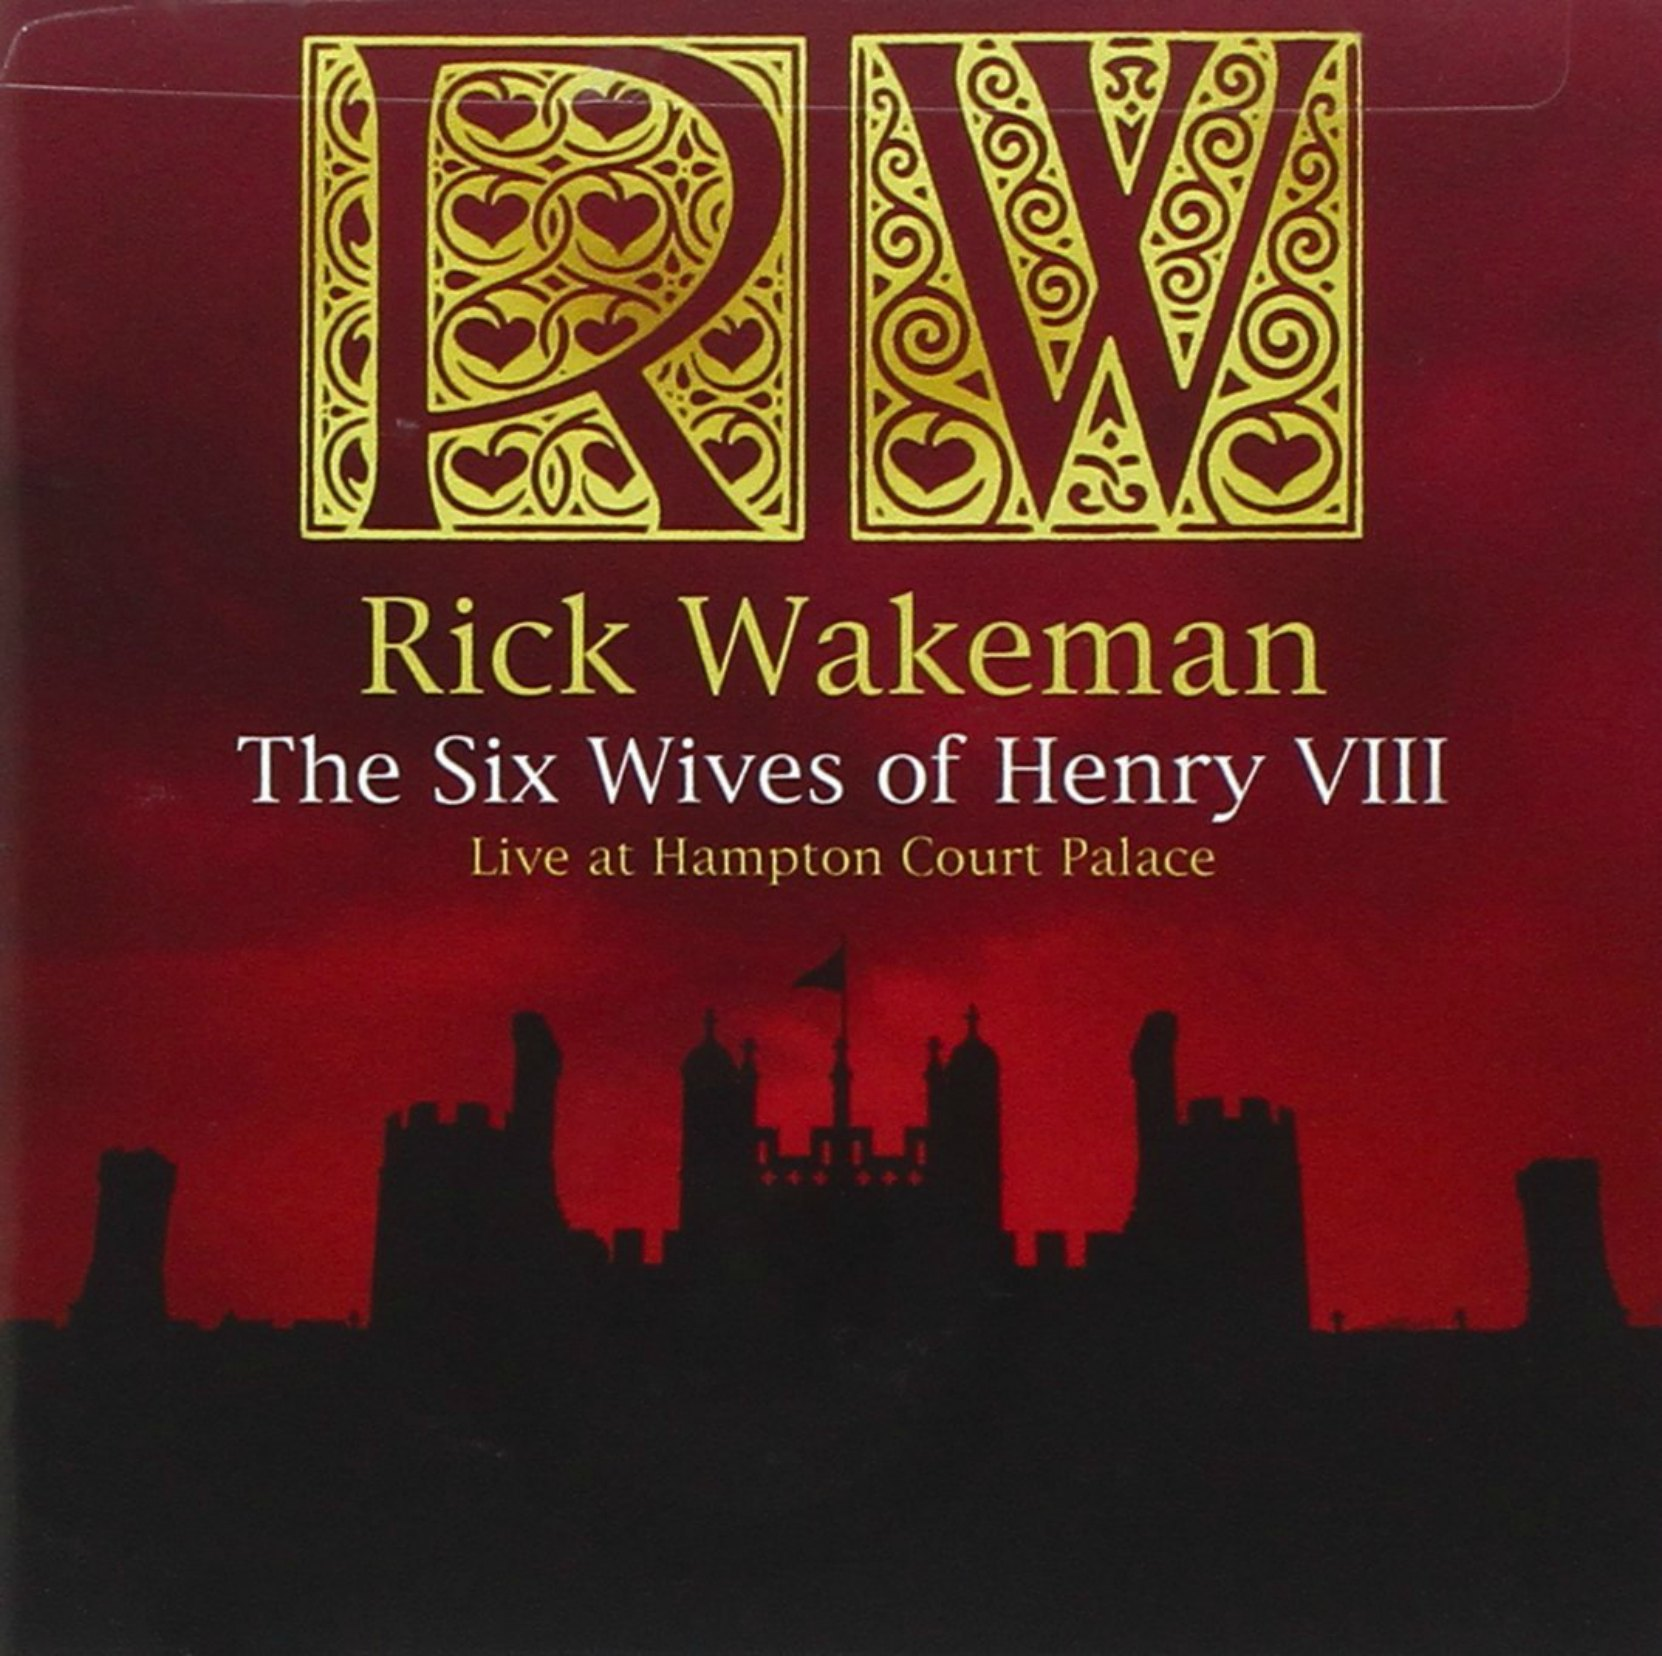 Rick Wakeman, The Six Wives of Henry VIII - Live at Hampton Court Palace, CD cover